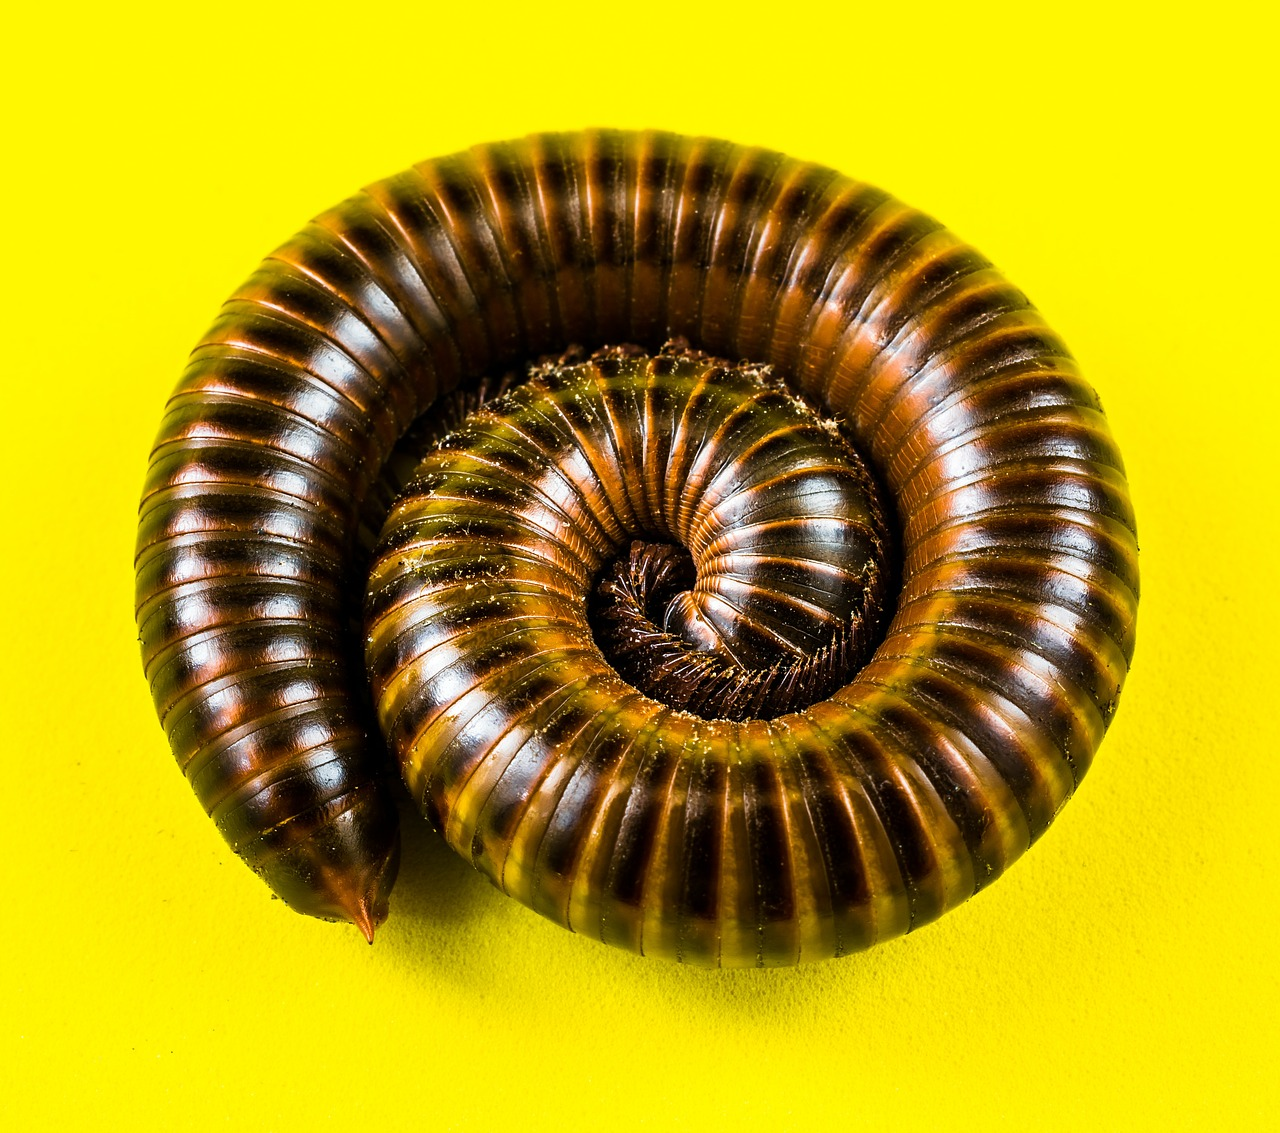 giant tausendfüßer millipedes arthropod free photo